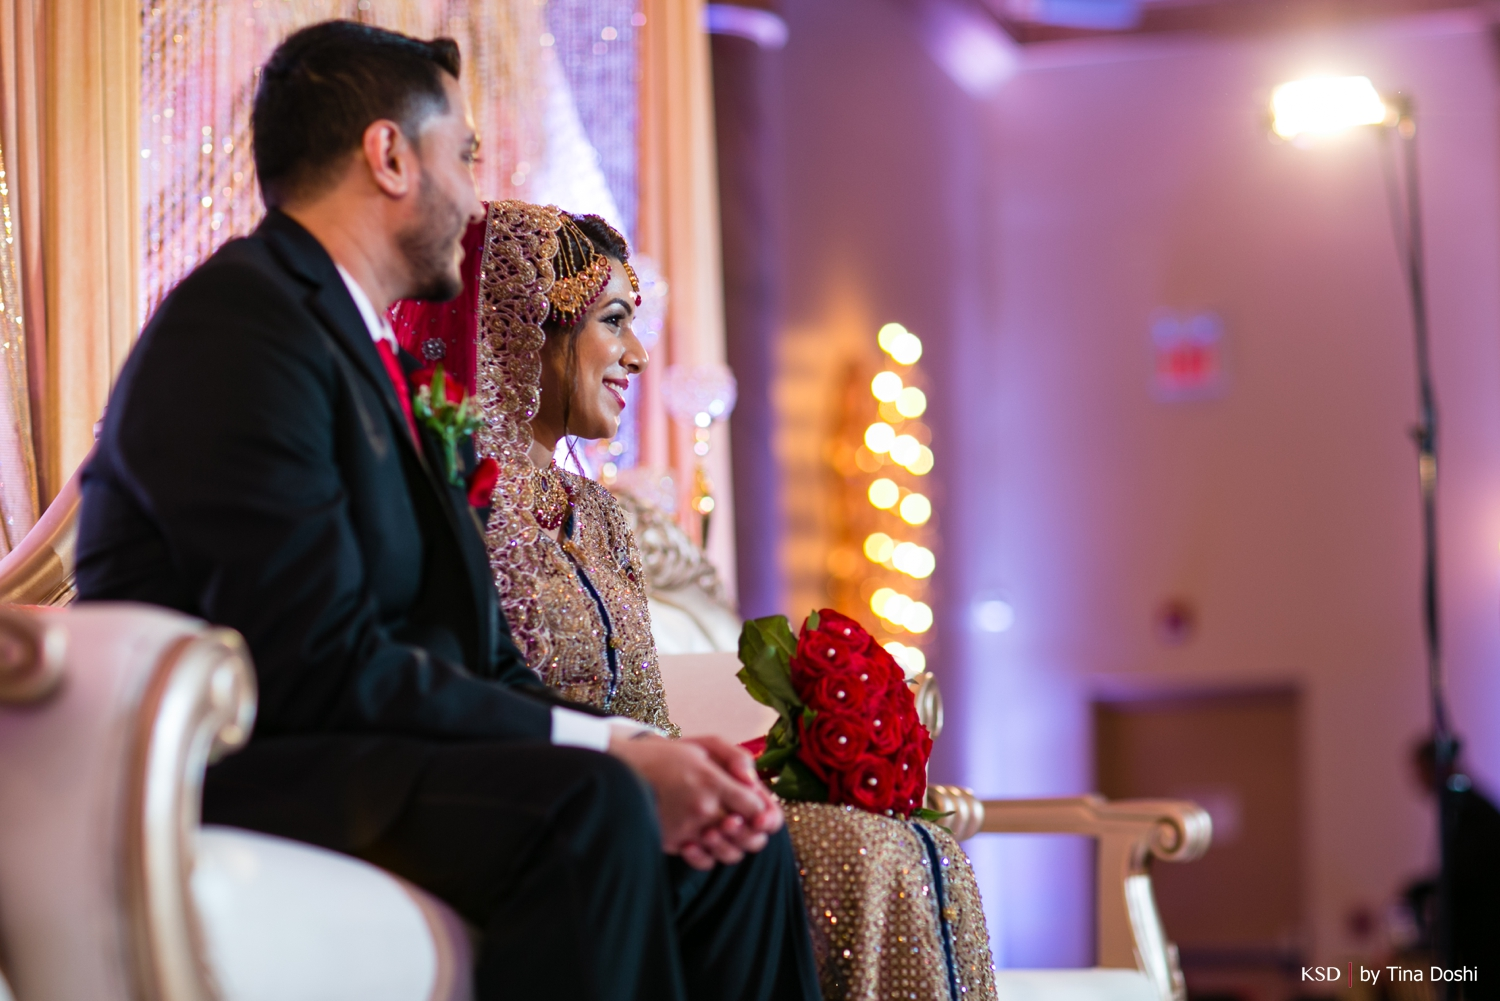 nj_south_asian_wedding_0121